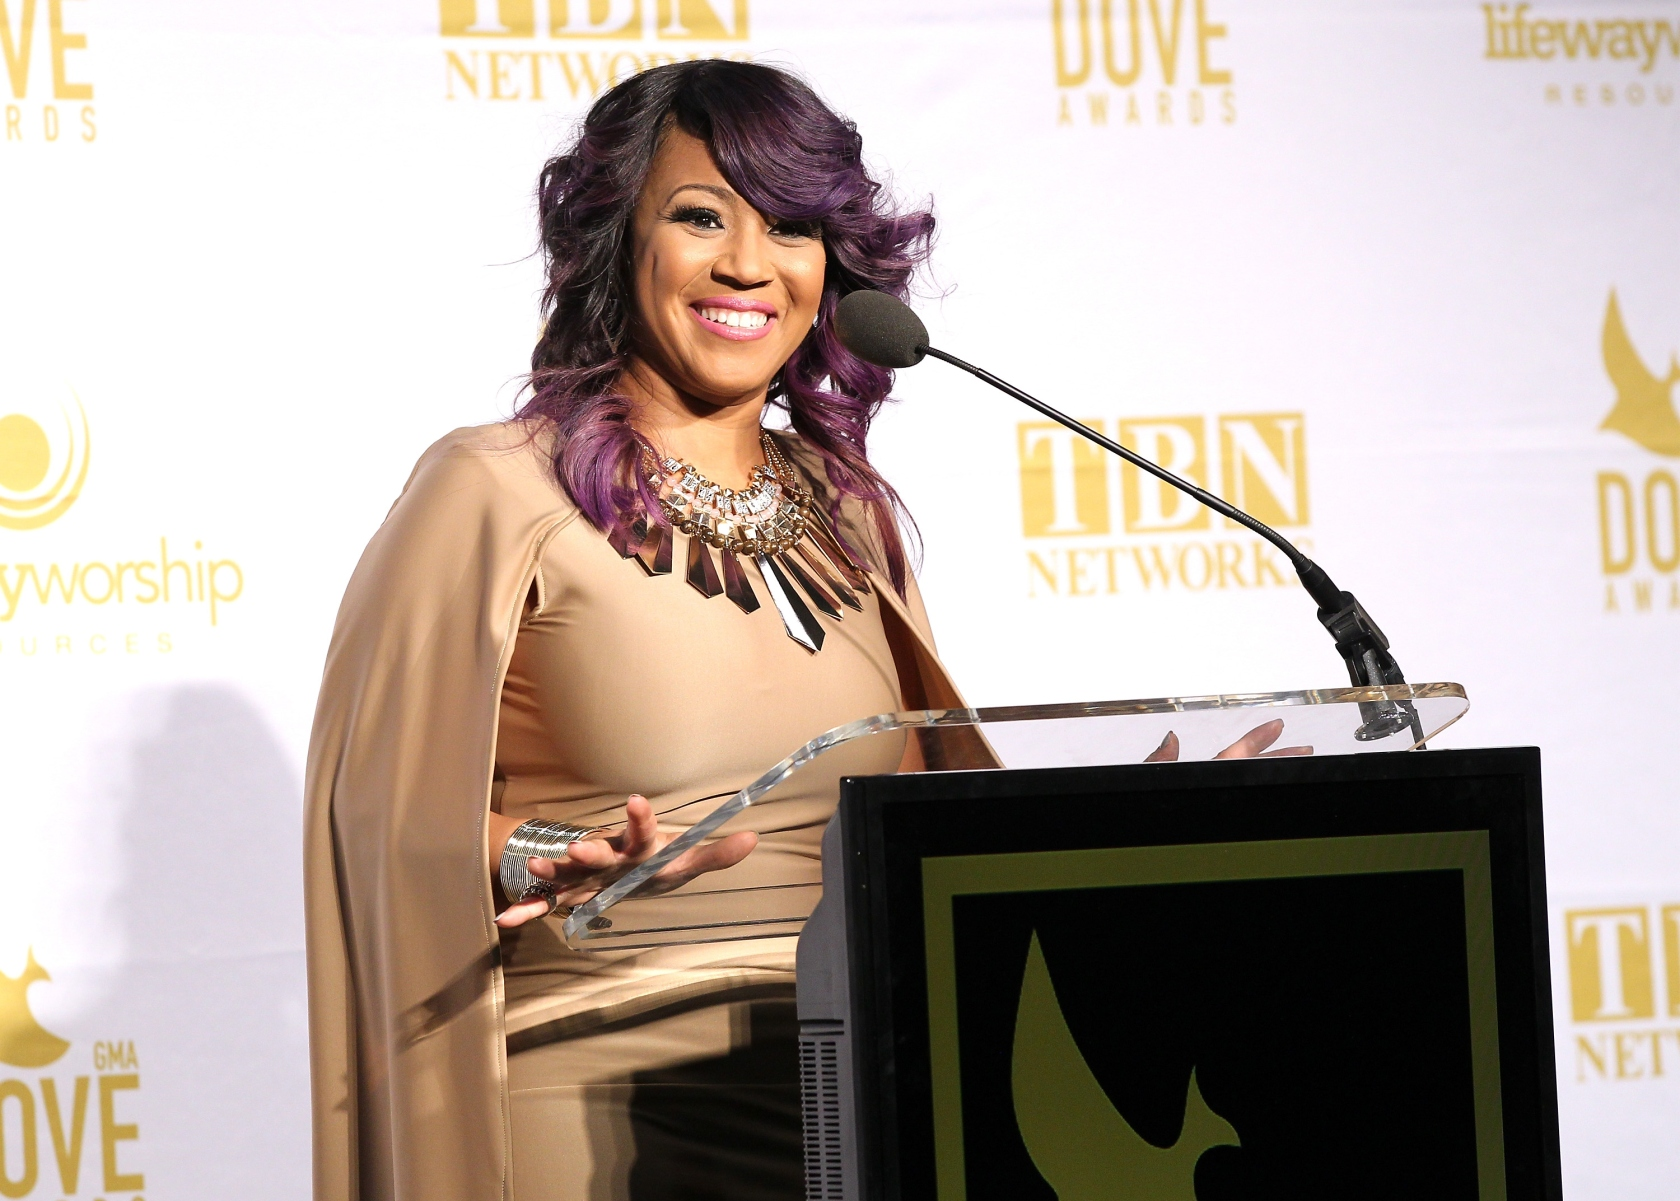 46th Annual GMA Dove Awards - Press Room